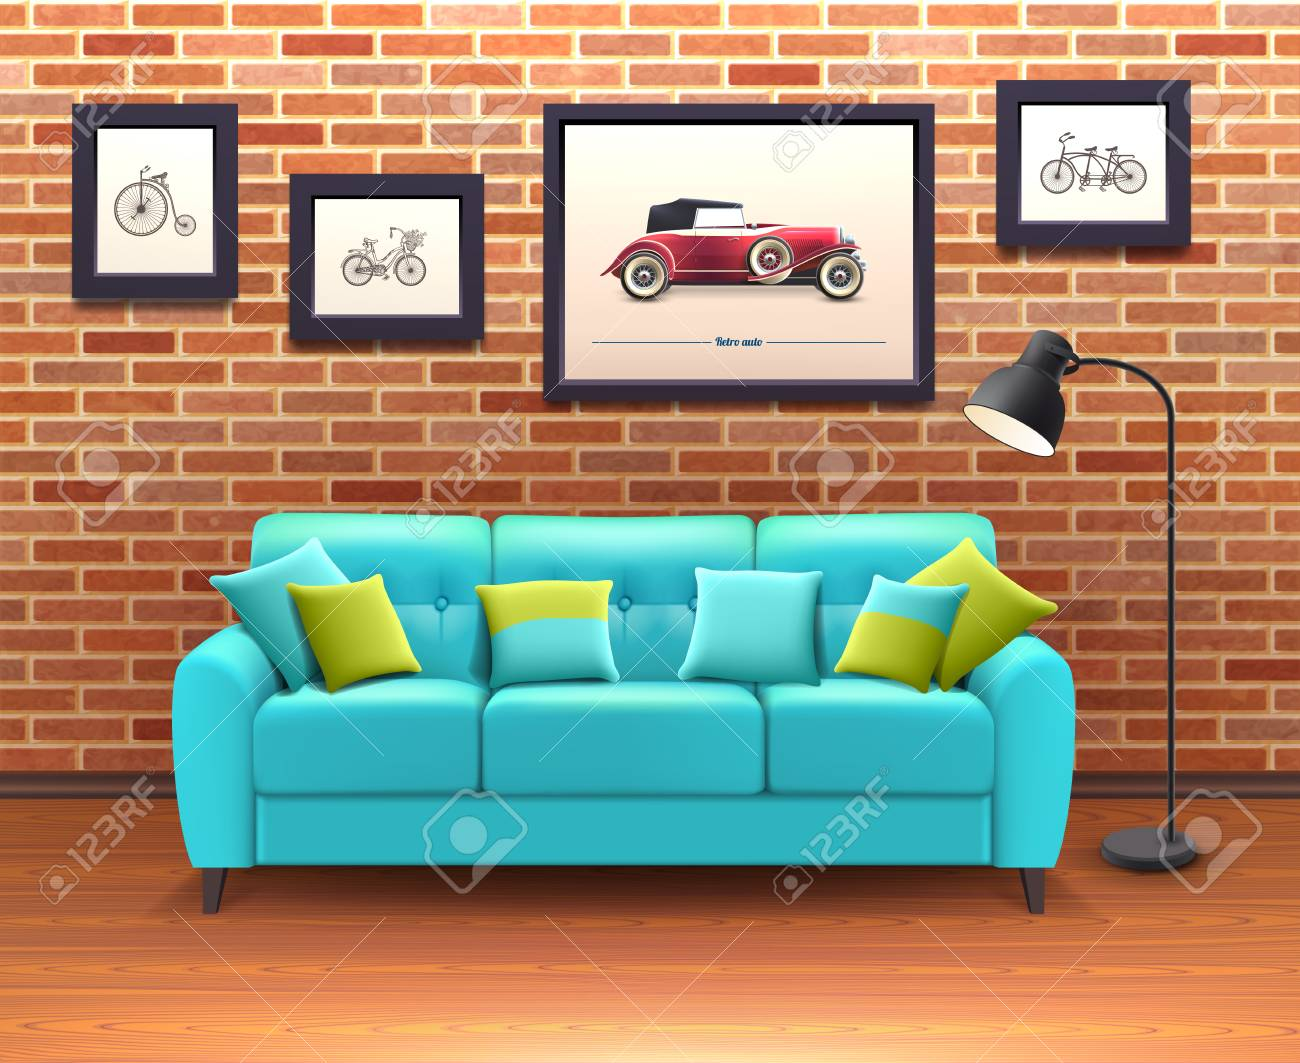 vibrant turquoise sofa with decorative pillows brings color in